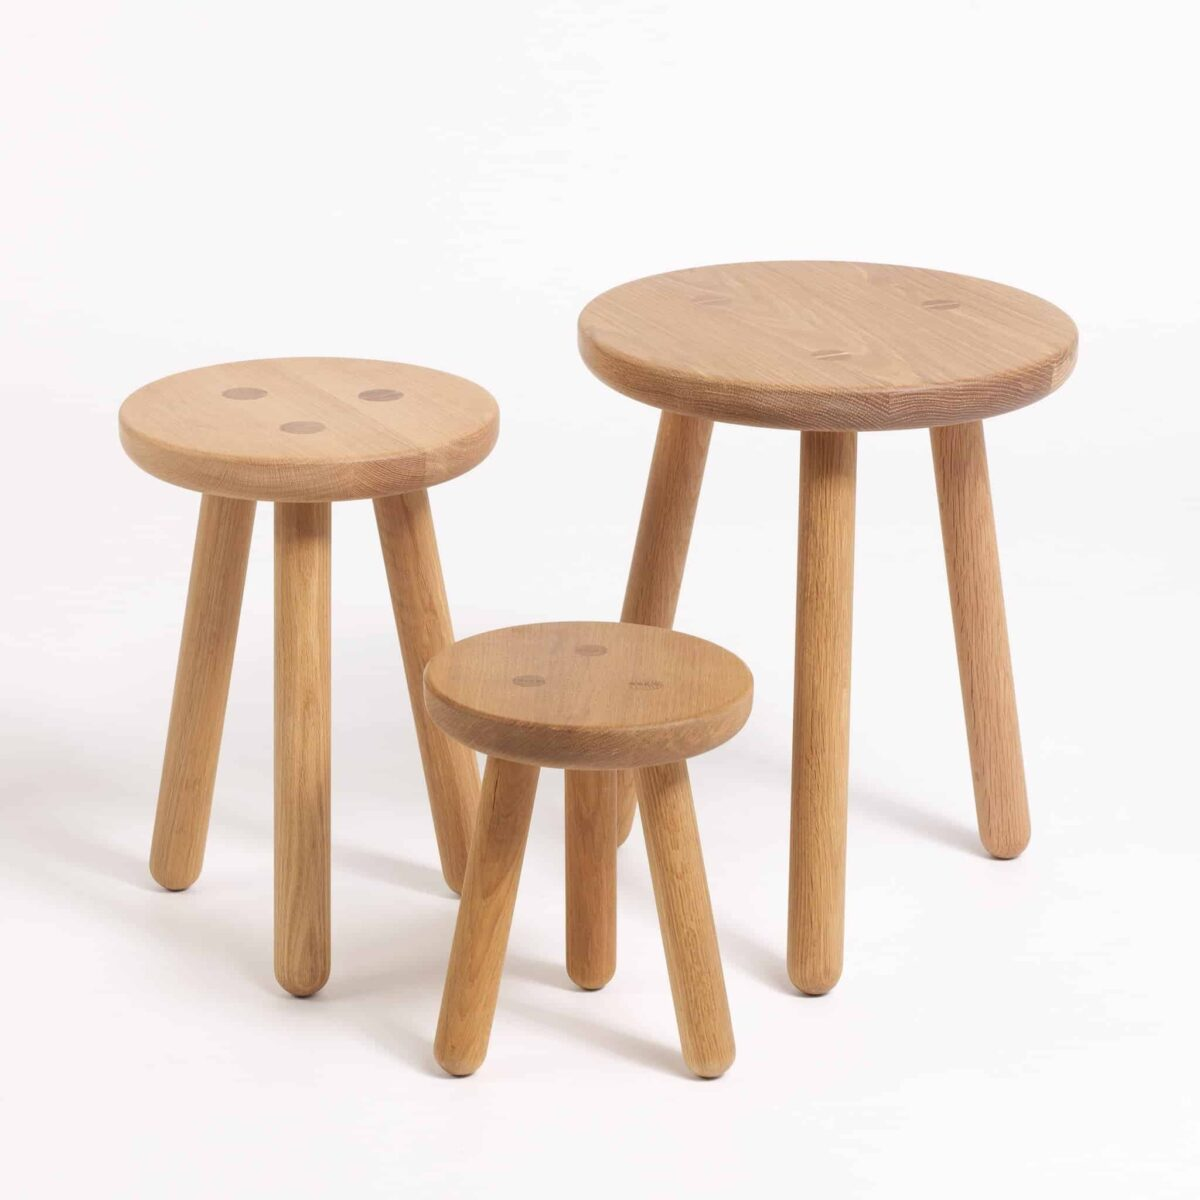 another-country-side-table-one-oak-natural-006